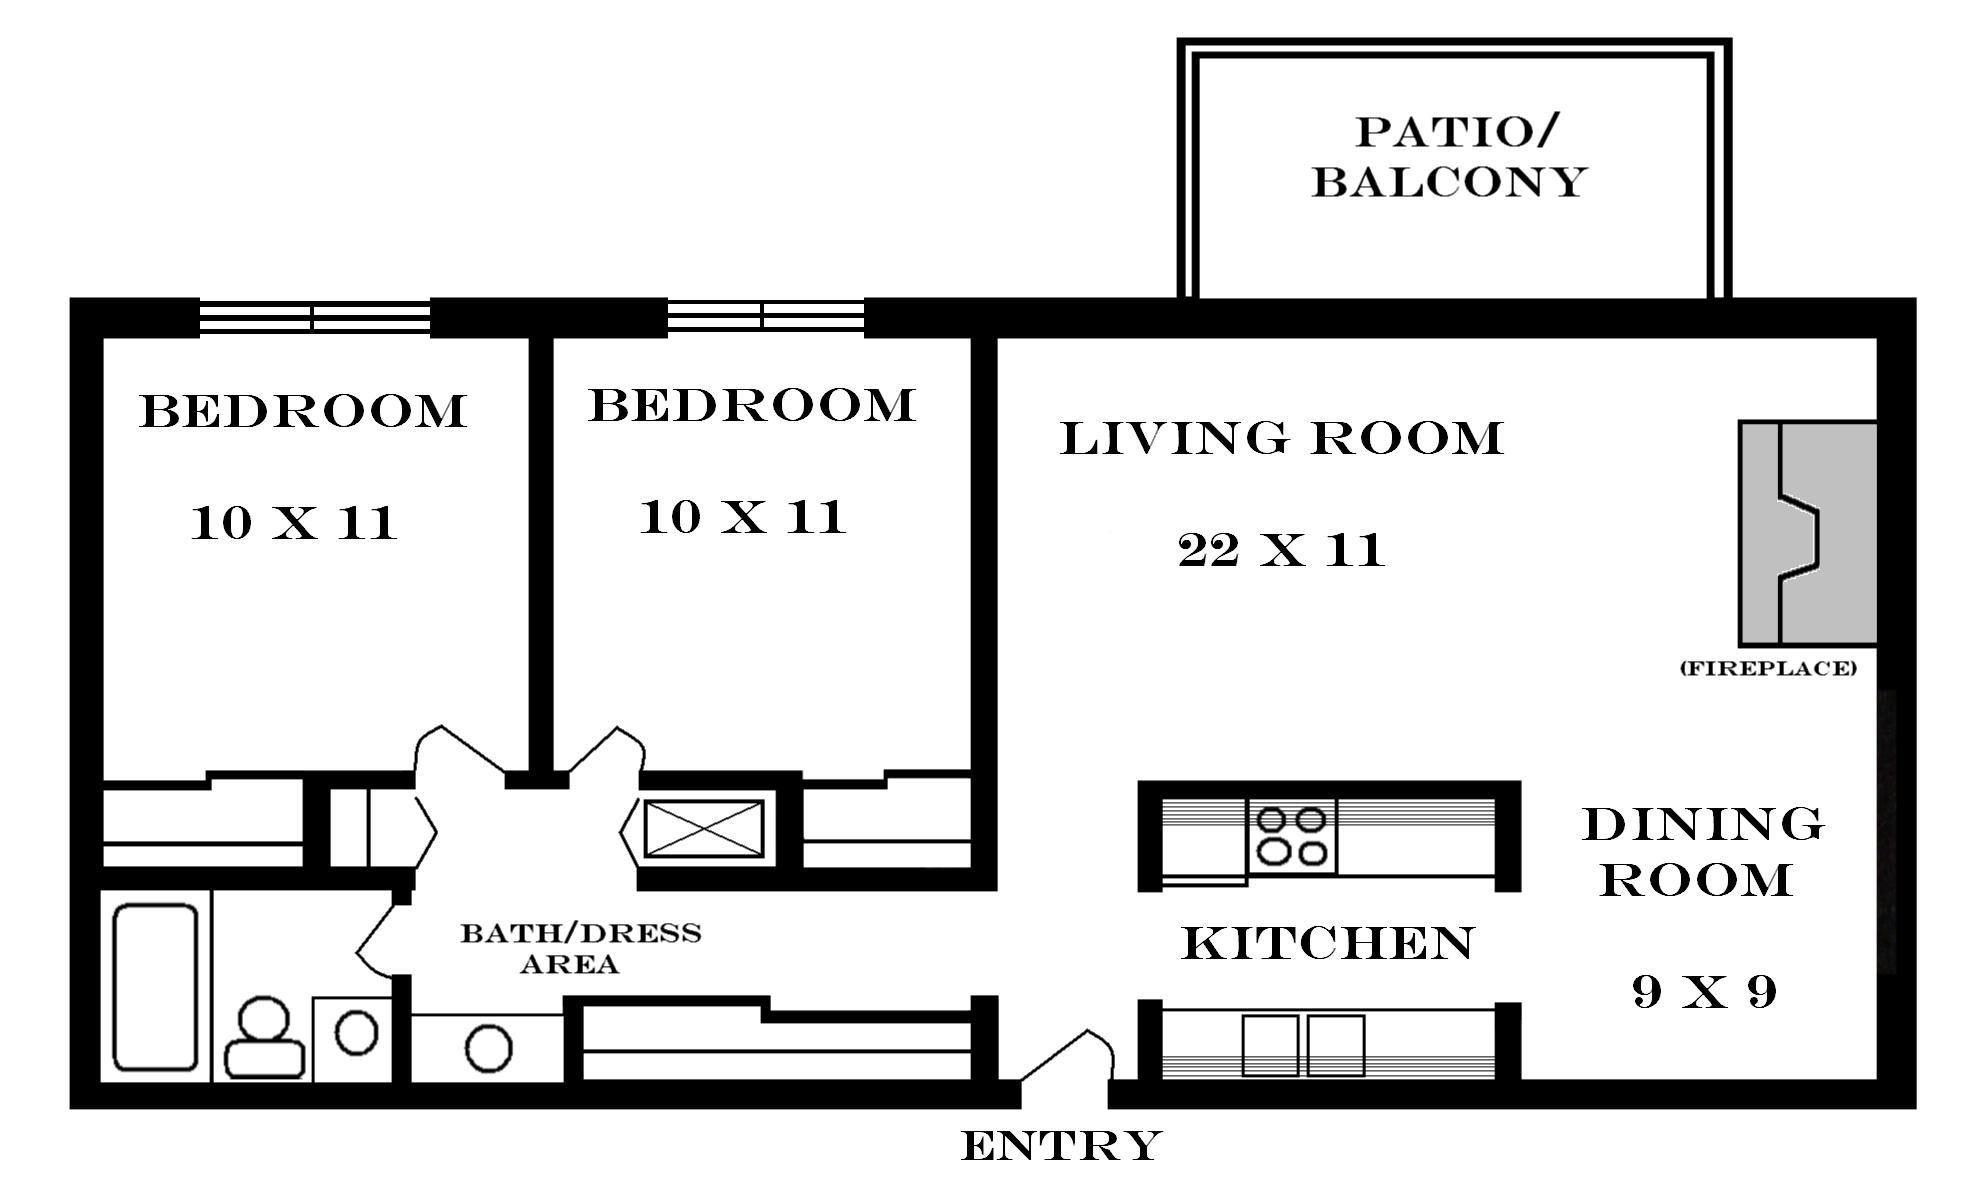 Small house floor plans 2 bedrooms 900 tiny houses for Design layout 2 bedroom flat